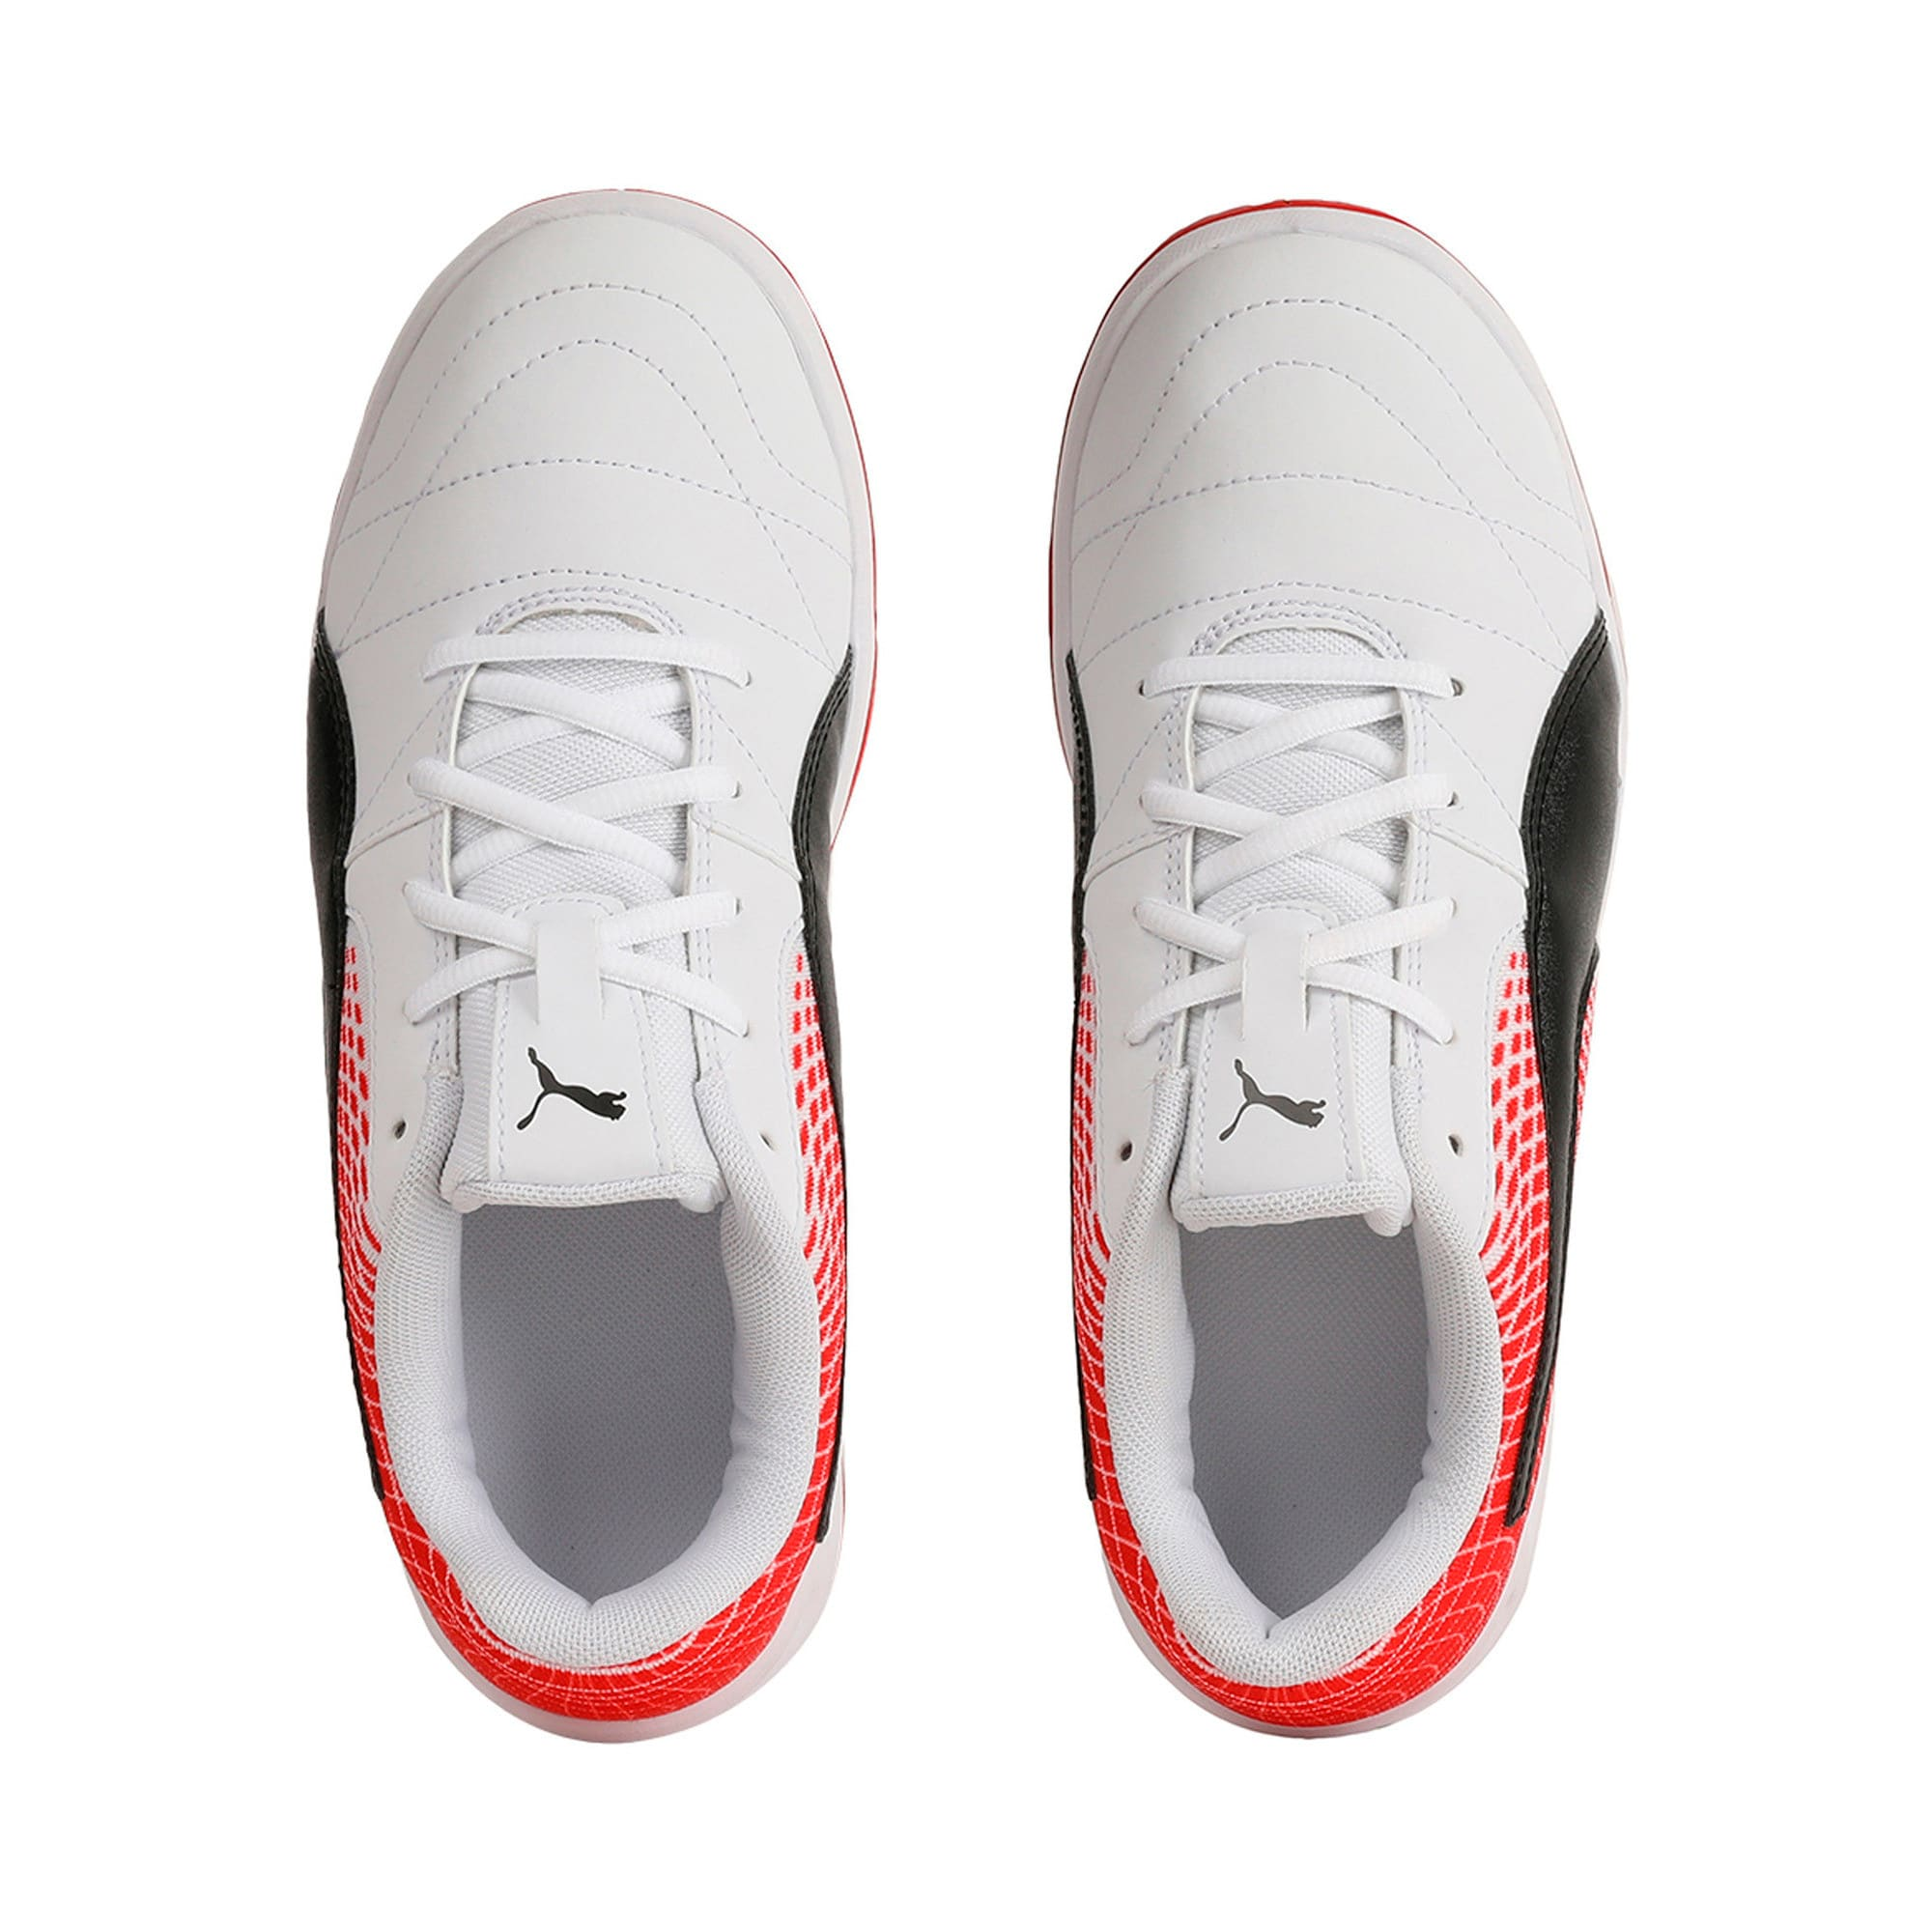 Thumbnail 6 of Veloz Indoor NG Kids' Training Shoes, White-Black-Flame Scarlet, medium-IND